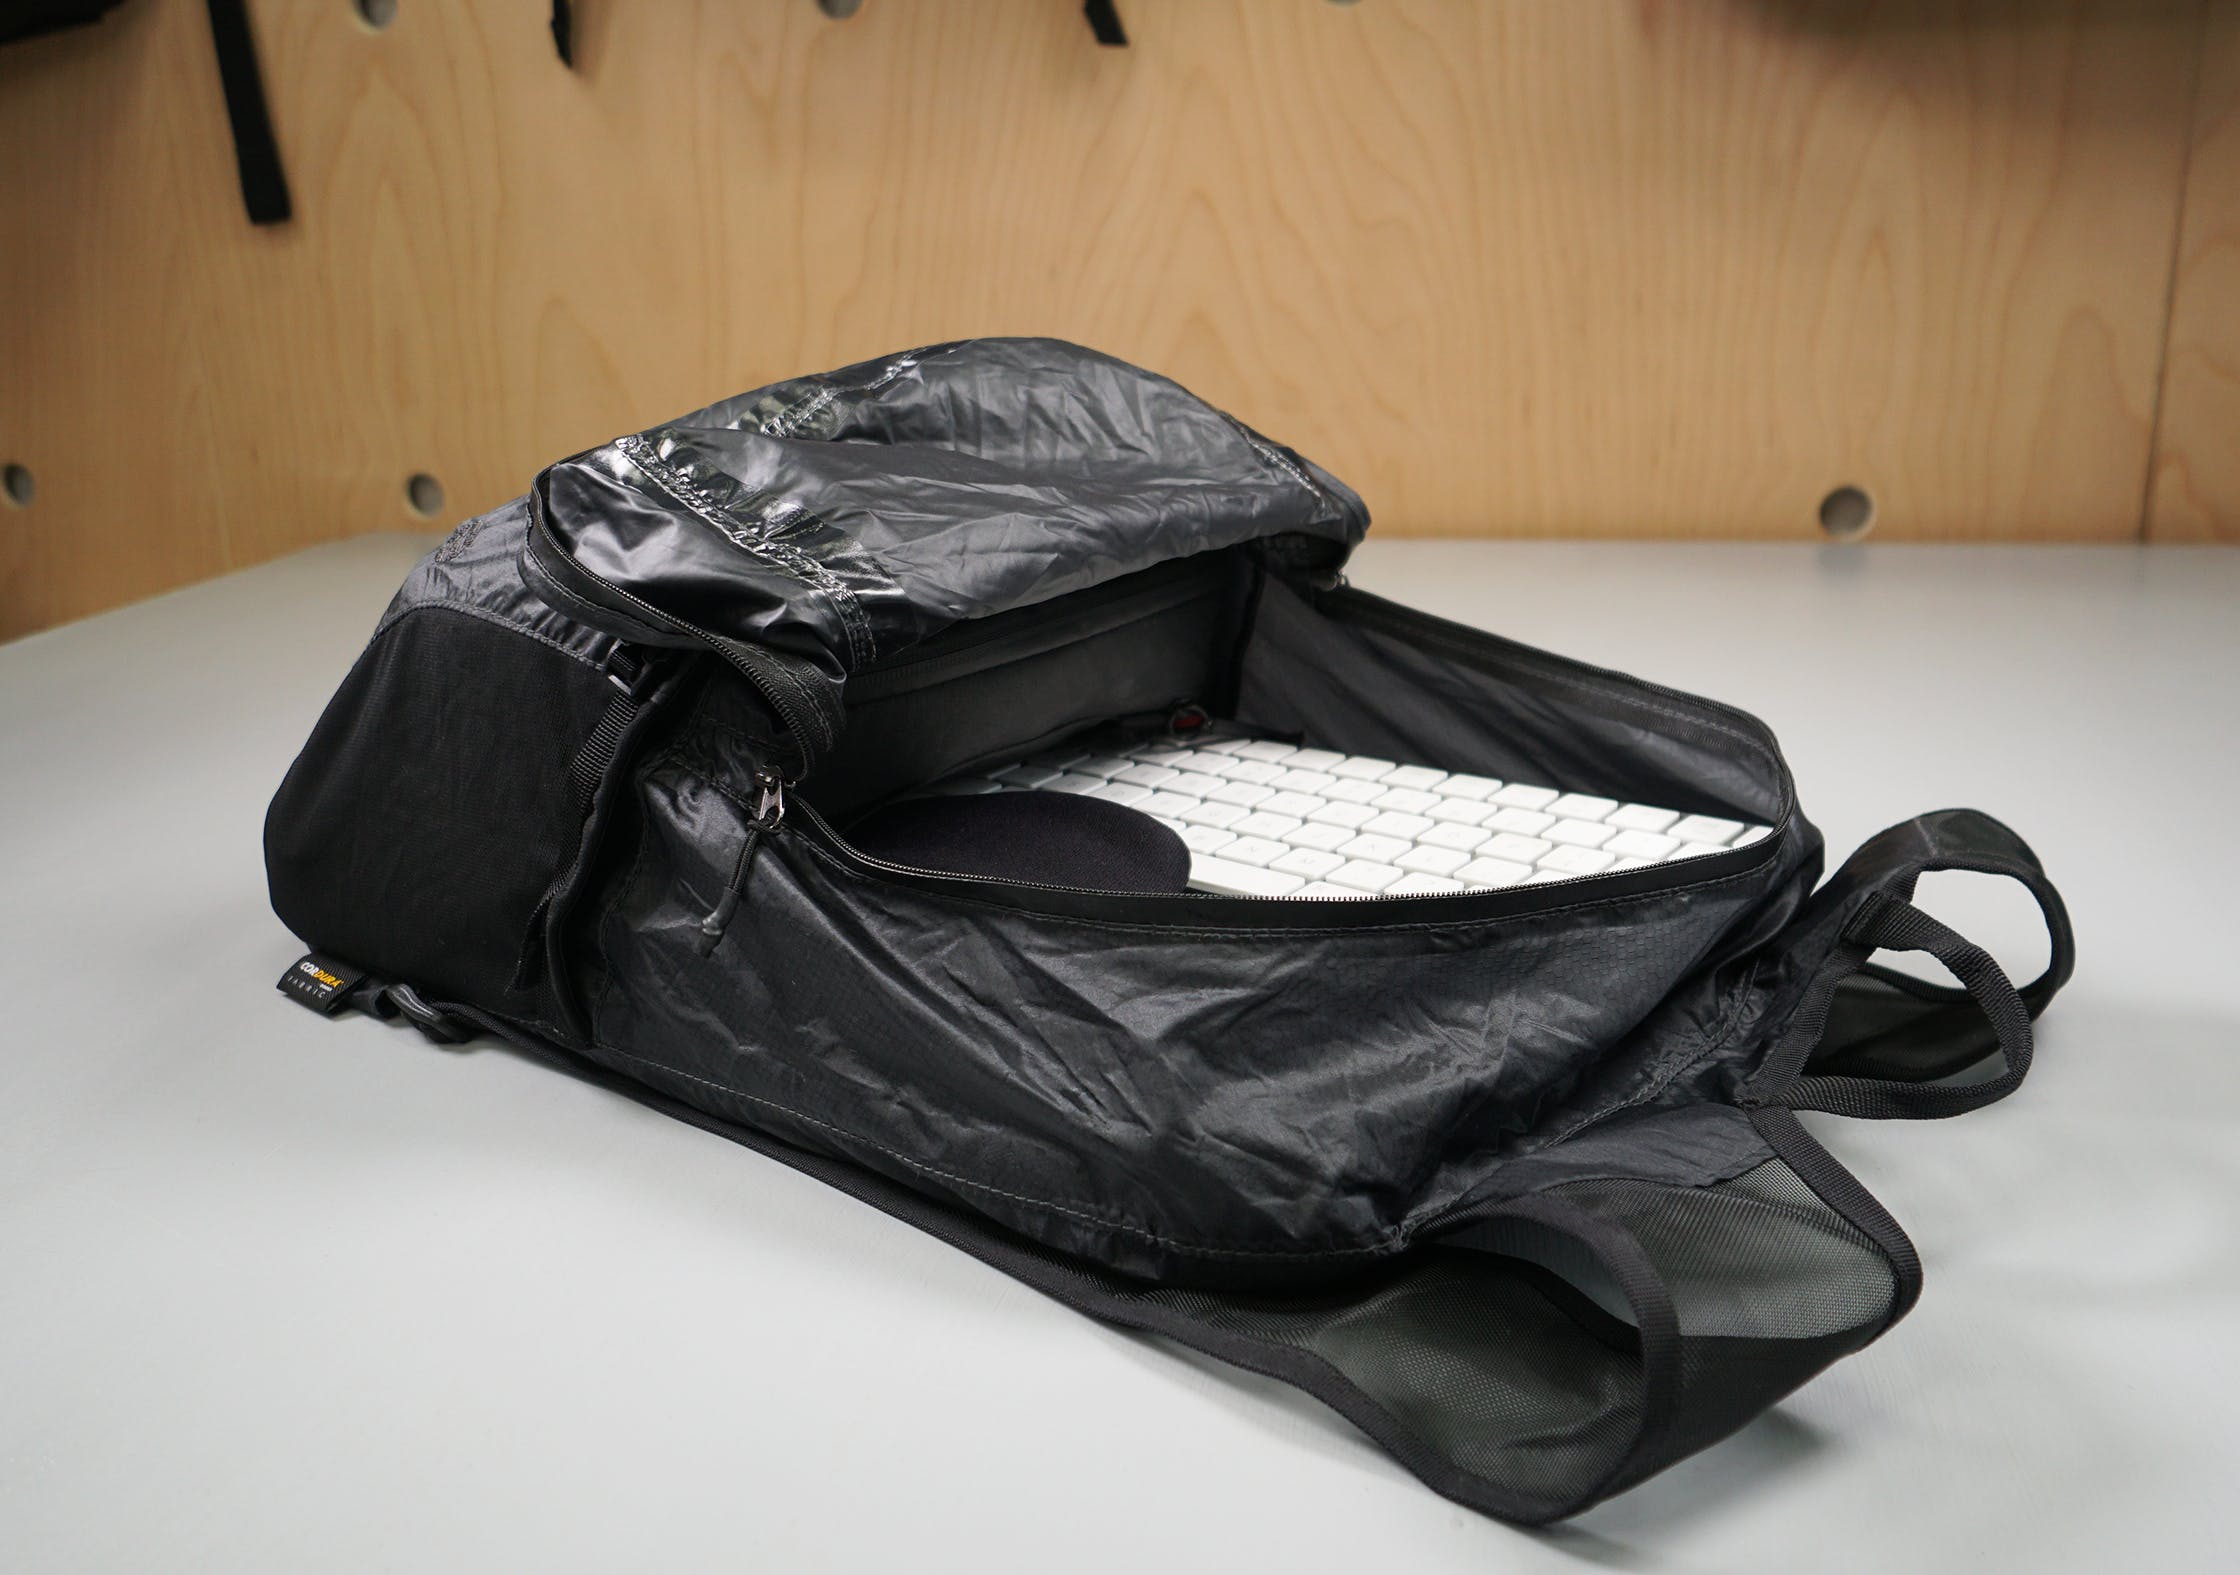 Matador Freefly16 Daypack Main Compartment